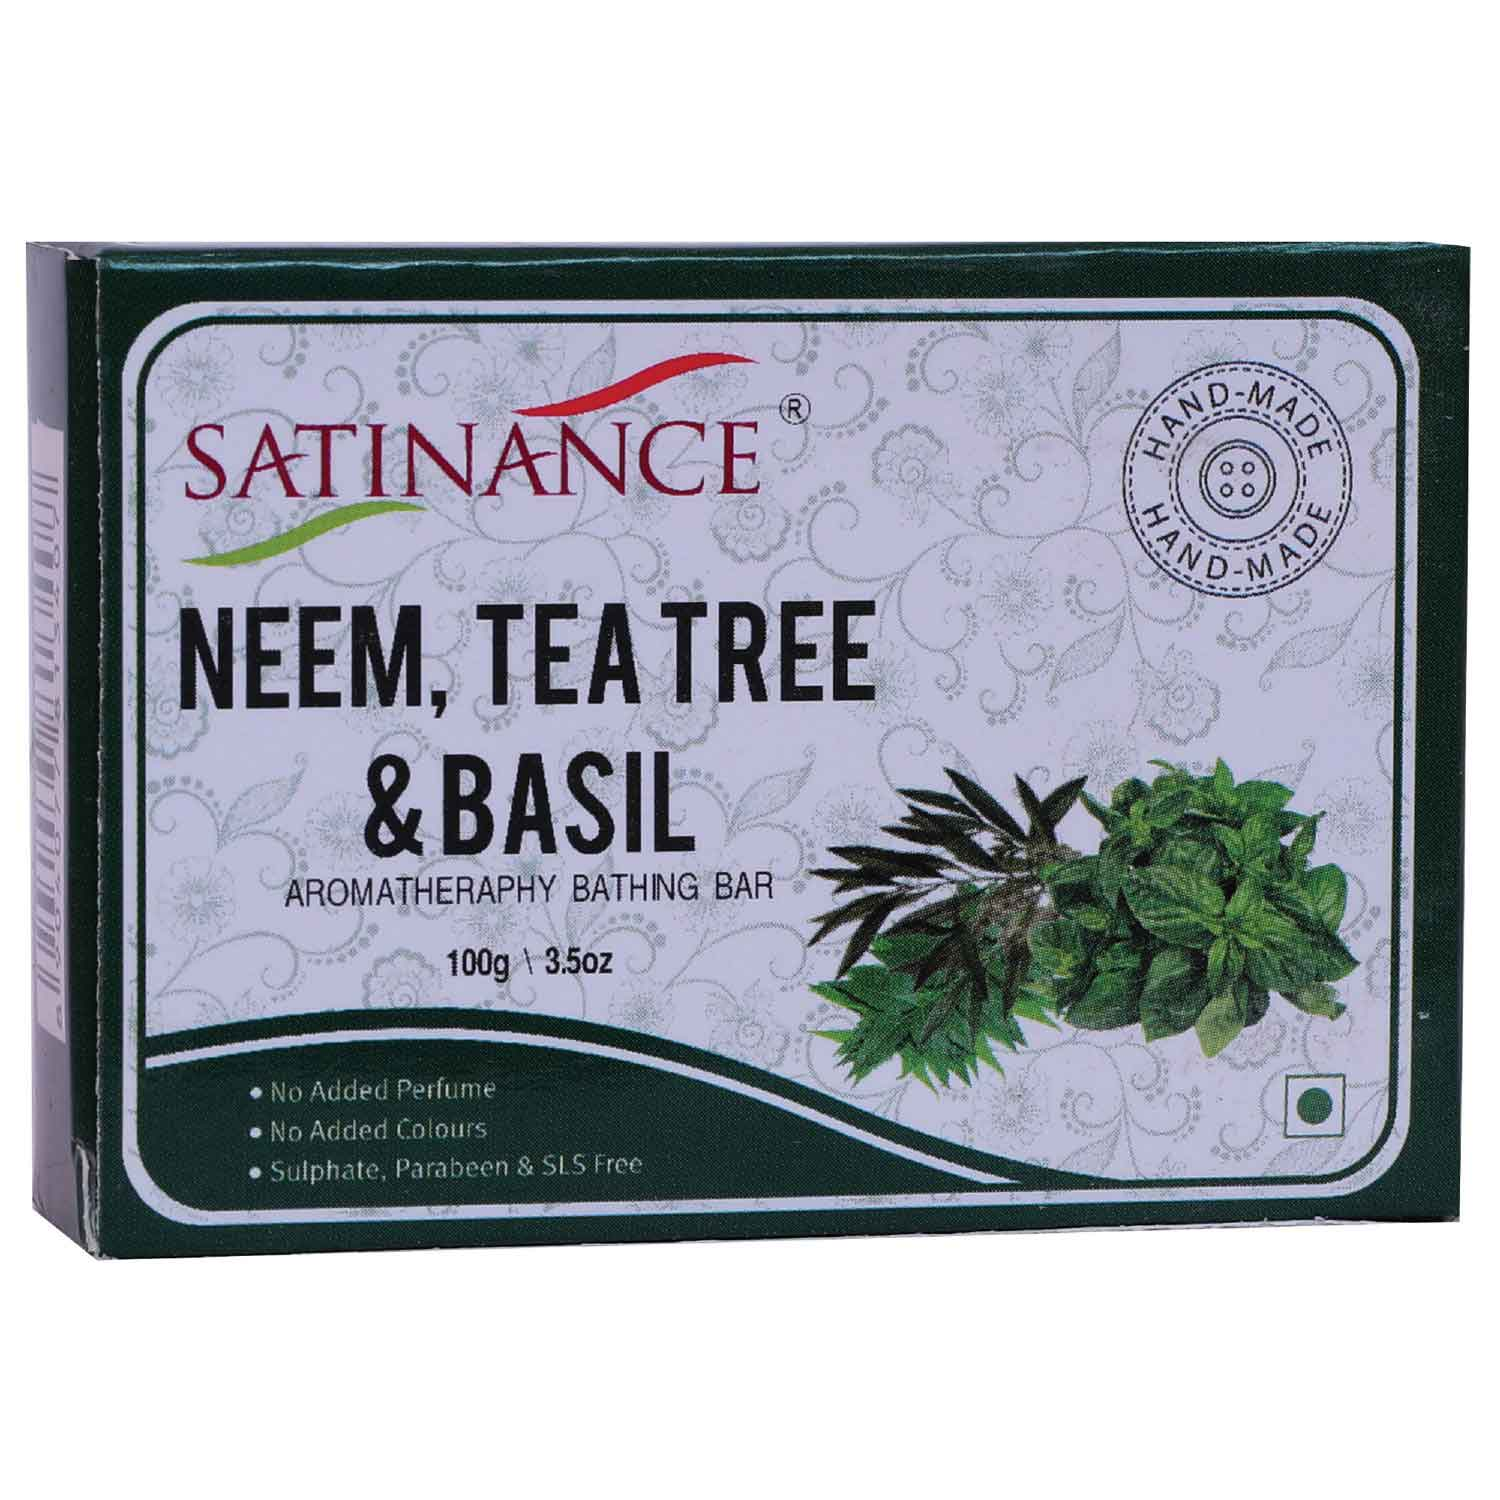 Neem Tea Tree & Basil Aromatherapy Bathing Bar( Transparent Soap)